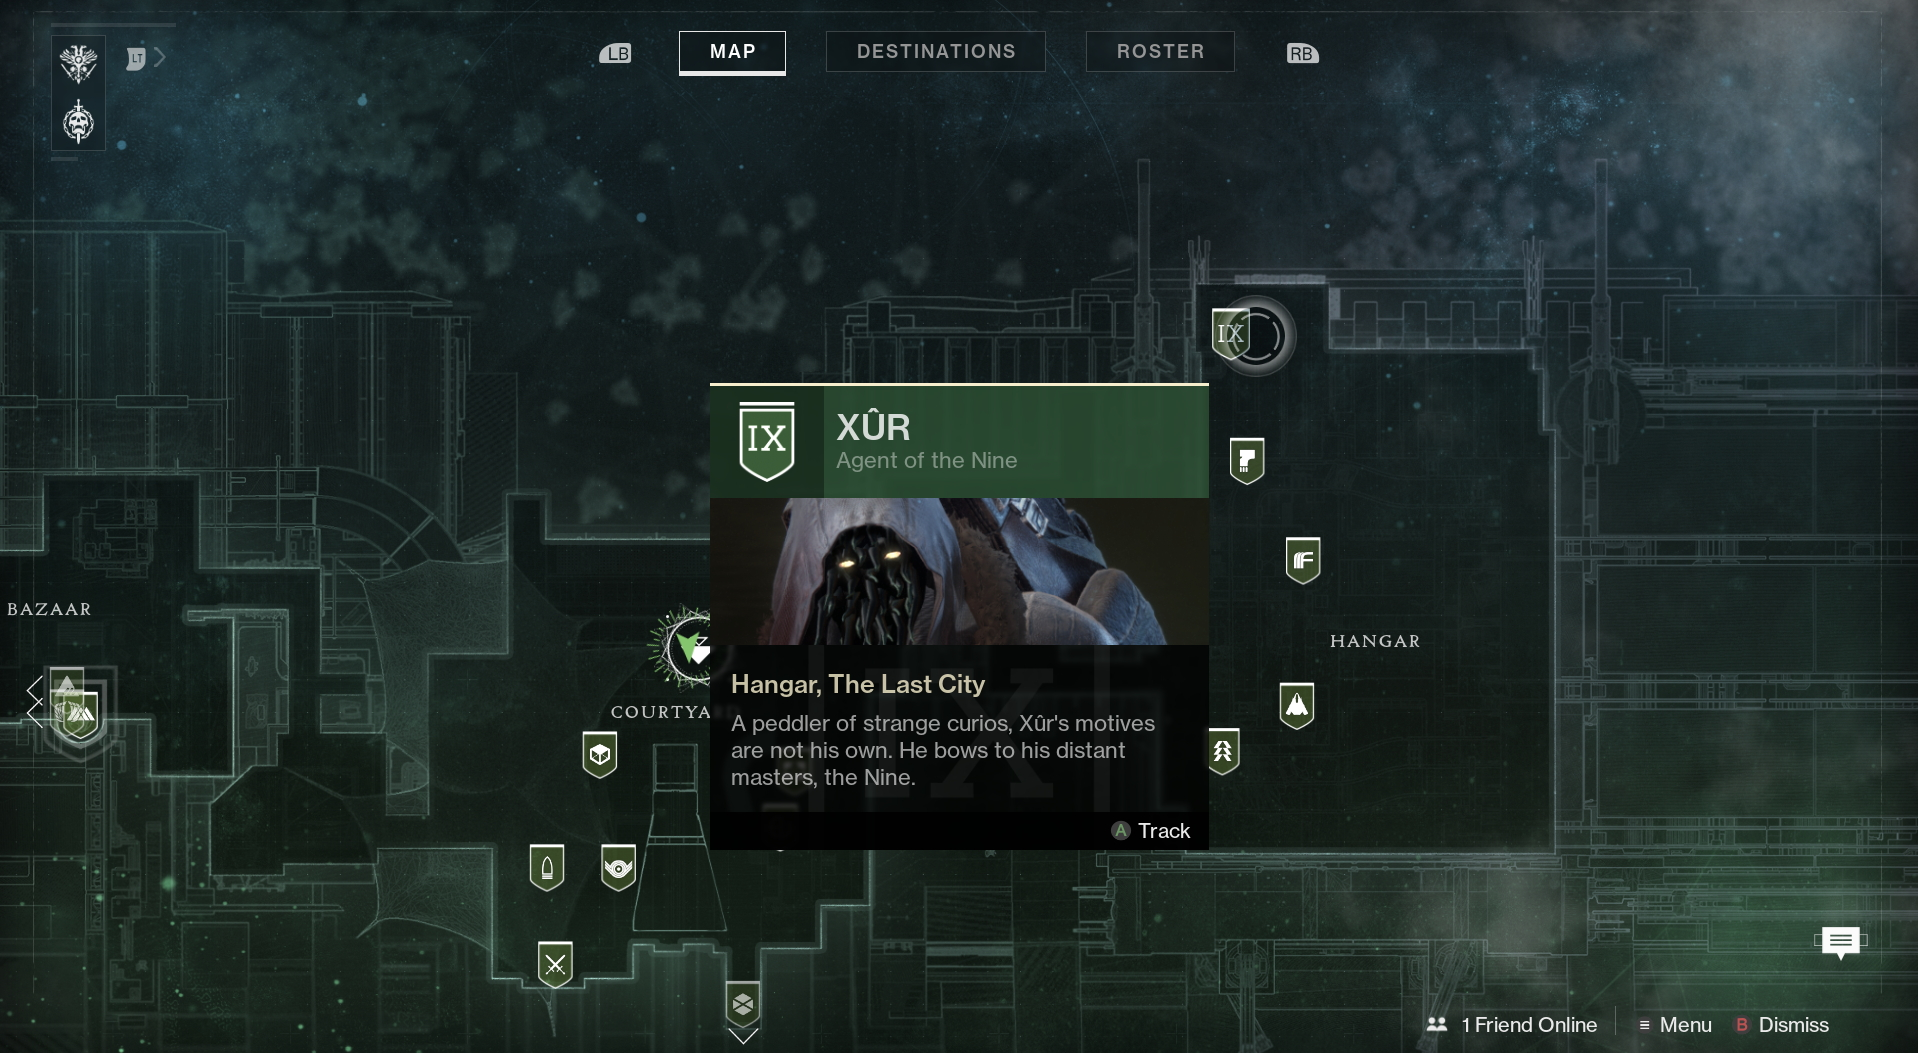 Destiny 2 Xur Guide - Where To Find Xur And What is He